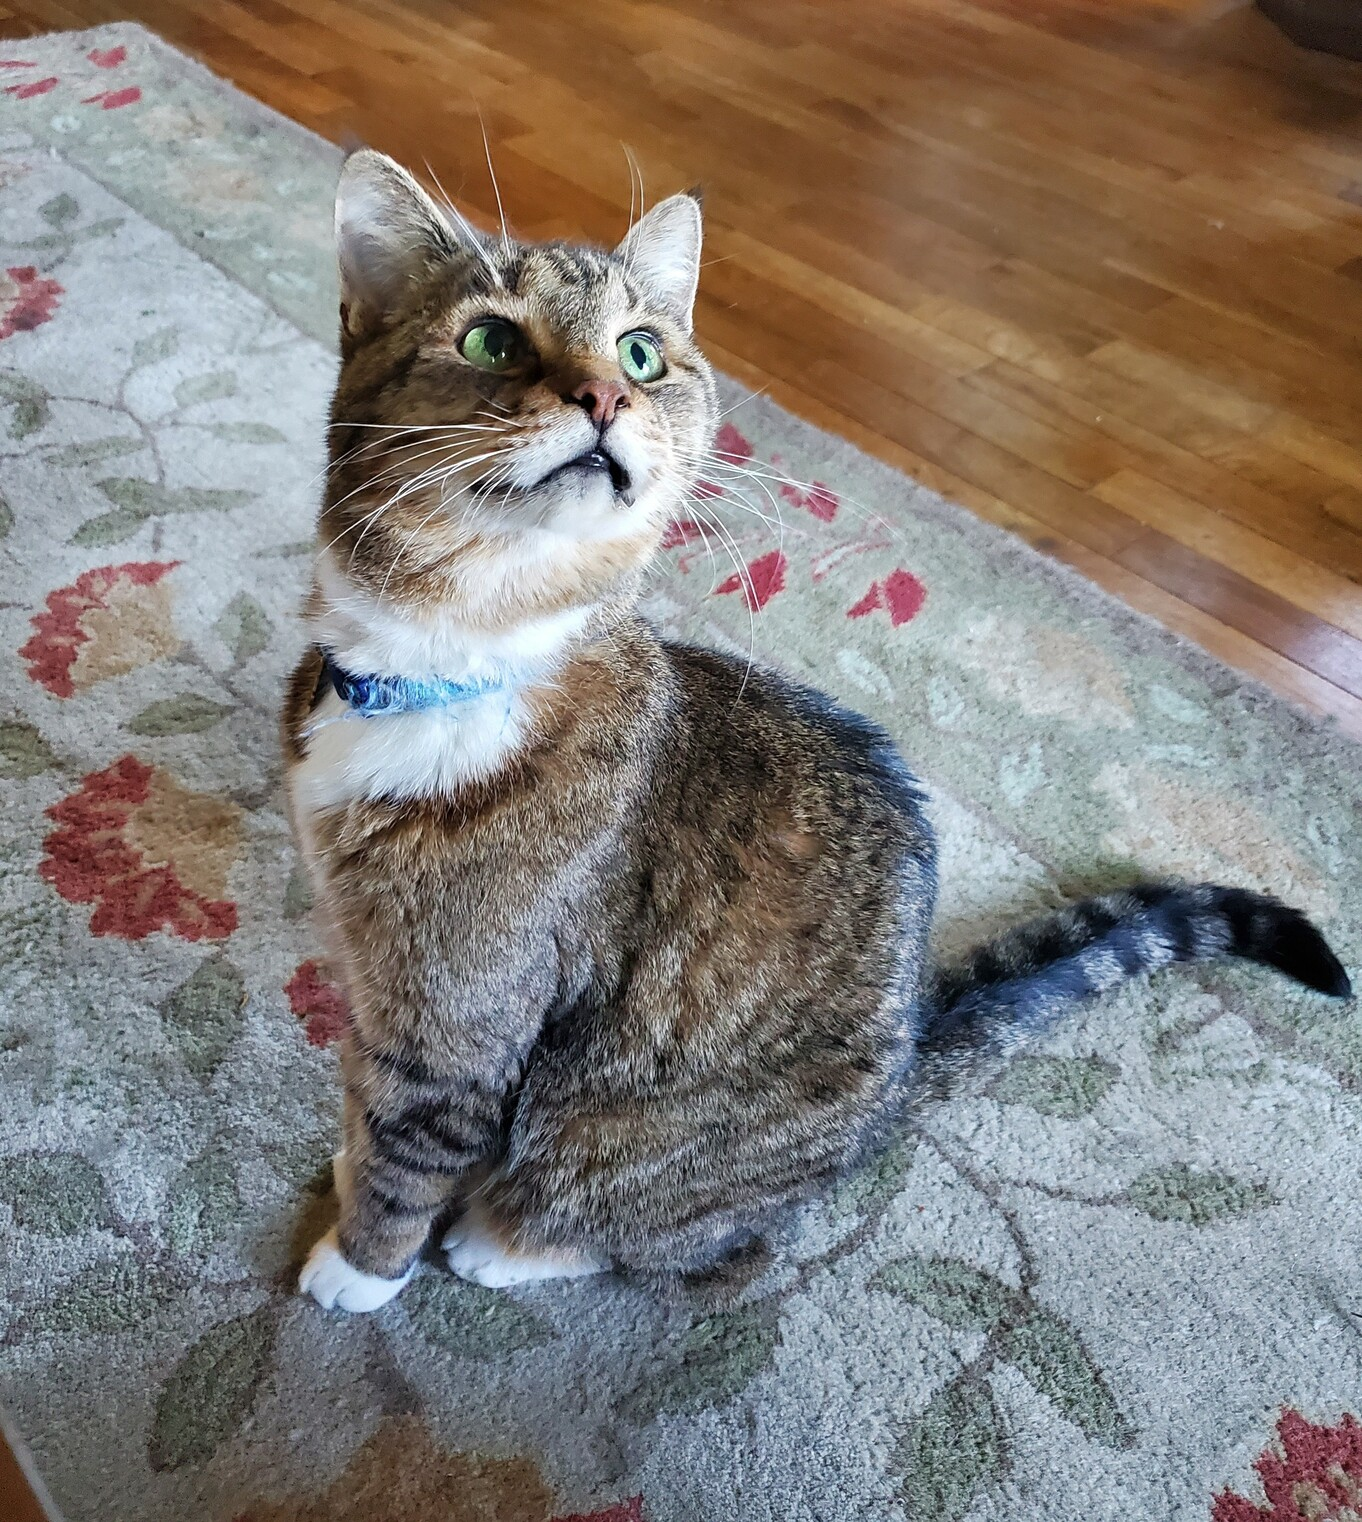 A tabby cat looking up